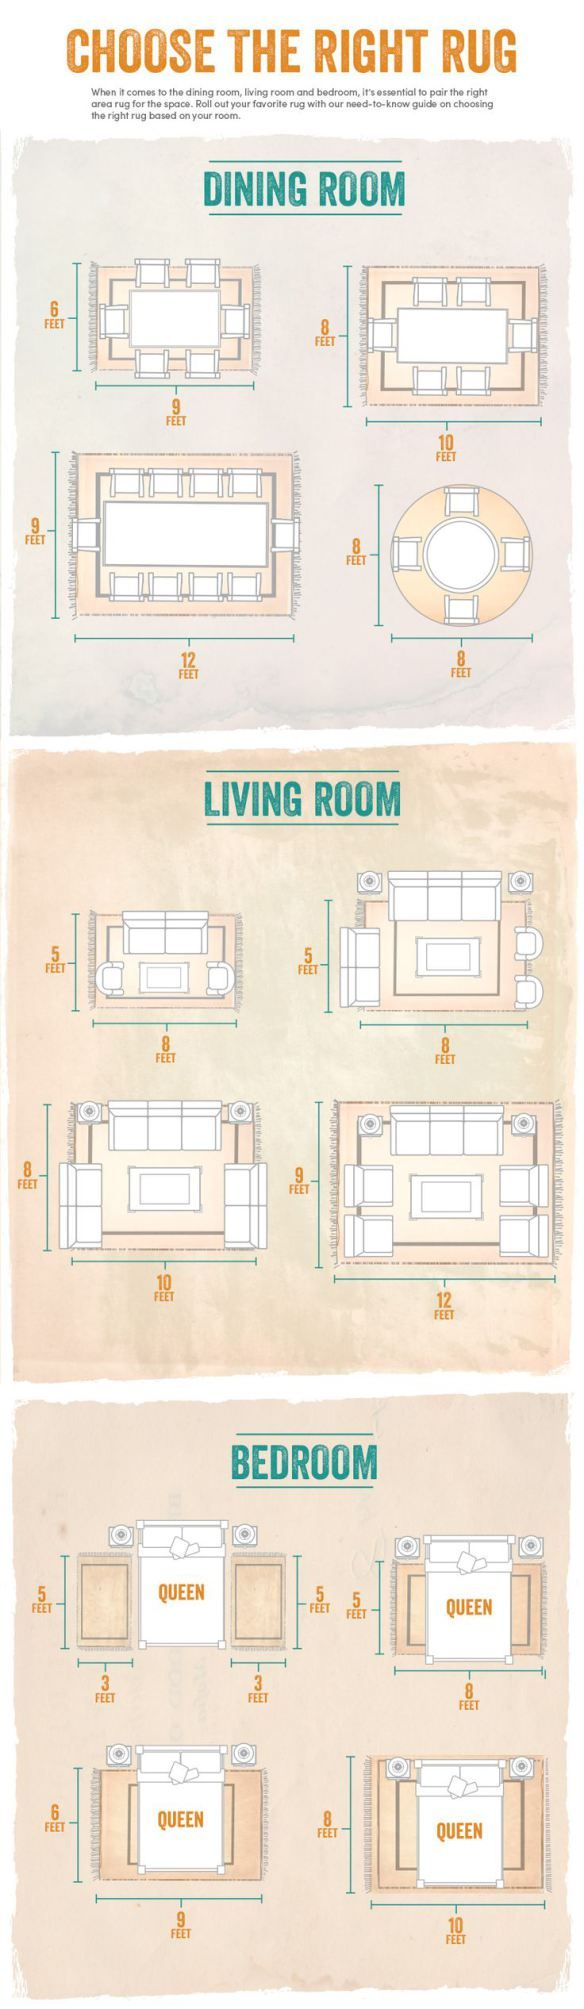 Rug Size Living Room 223 Best Images About Interior Design Tips On Pinterest Tvs Ux